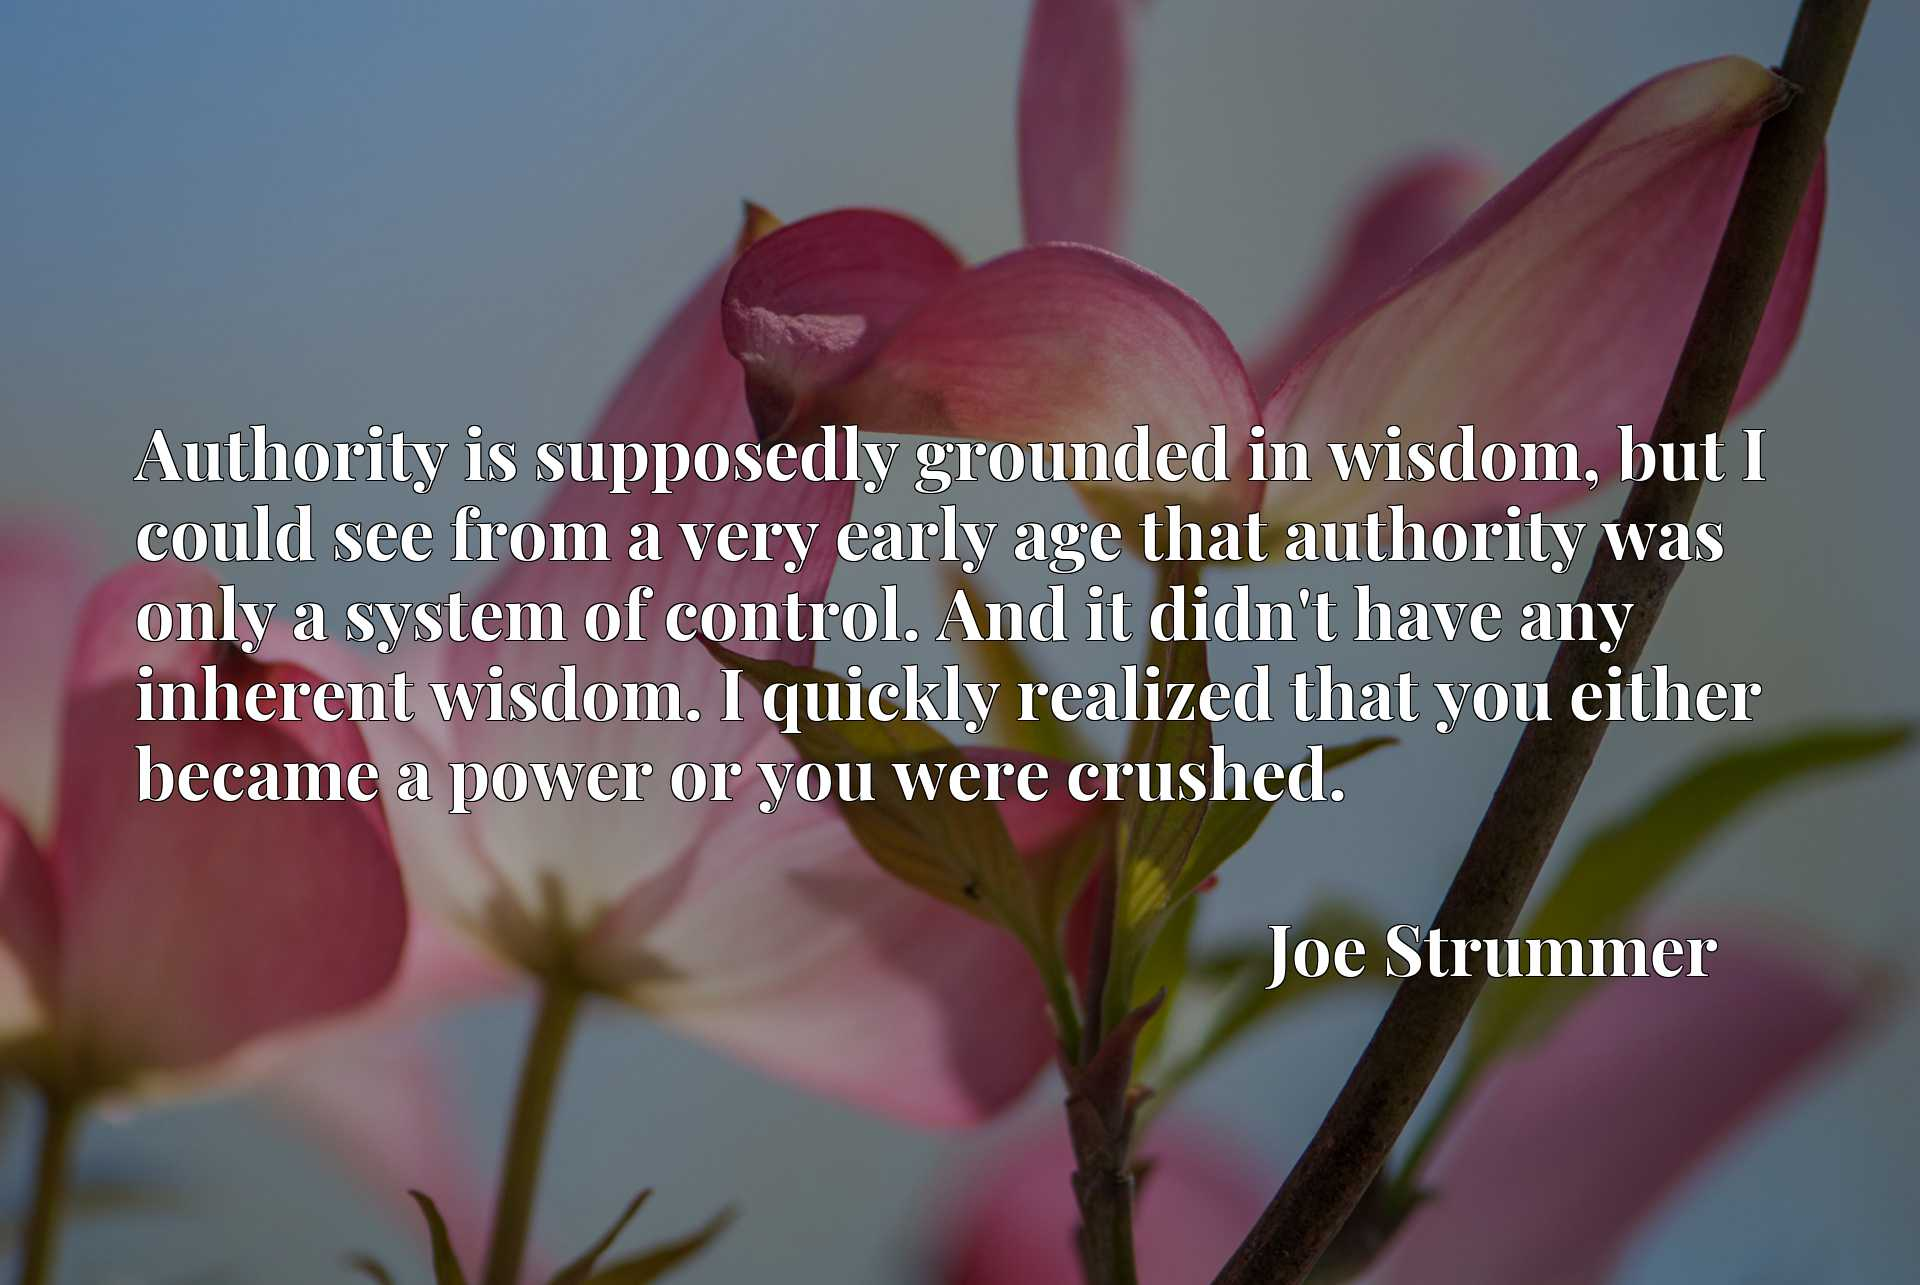 Authority is supposedly grounded in wisdom, but I could see from a very early age that authority was only a system of control. And it didn't have any inherent wisdom. I quickly realized that you either became a power or you were crushed.